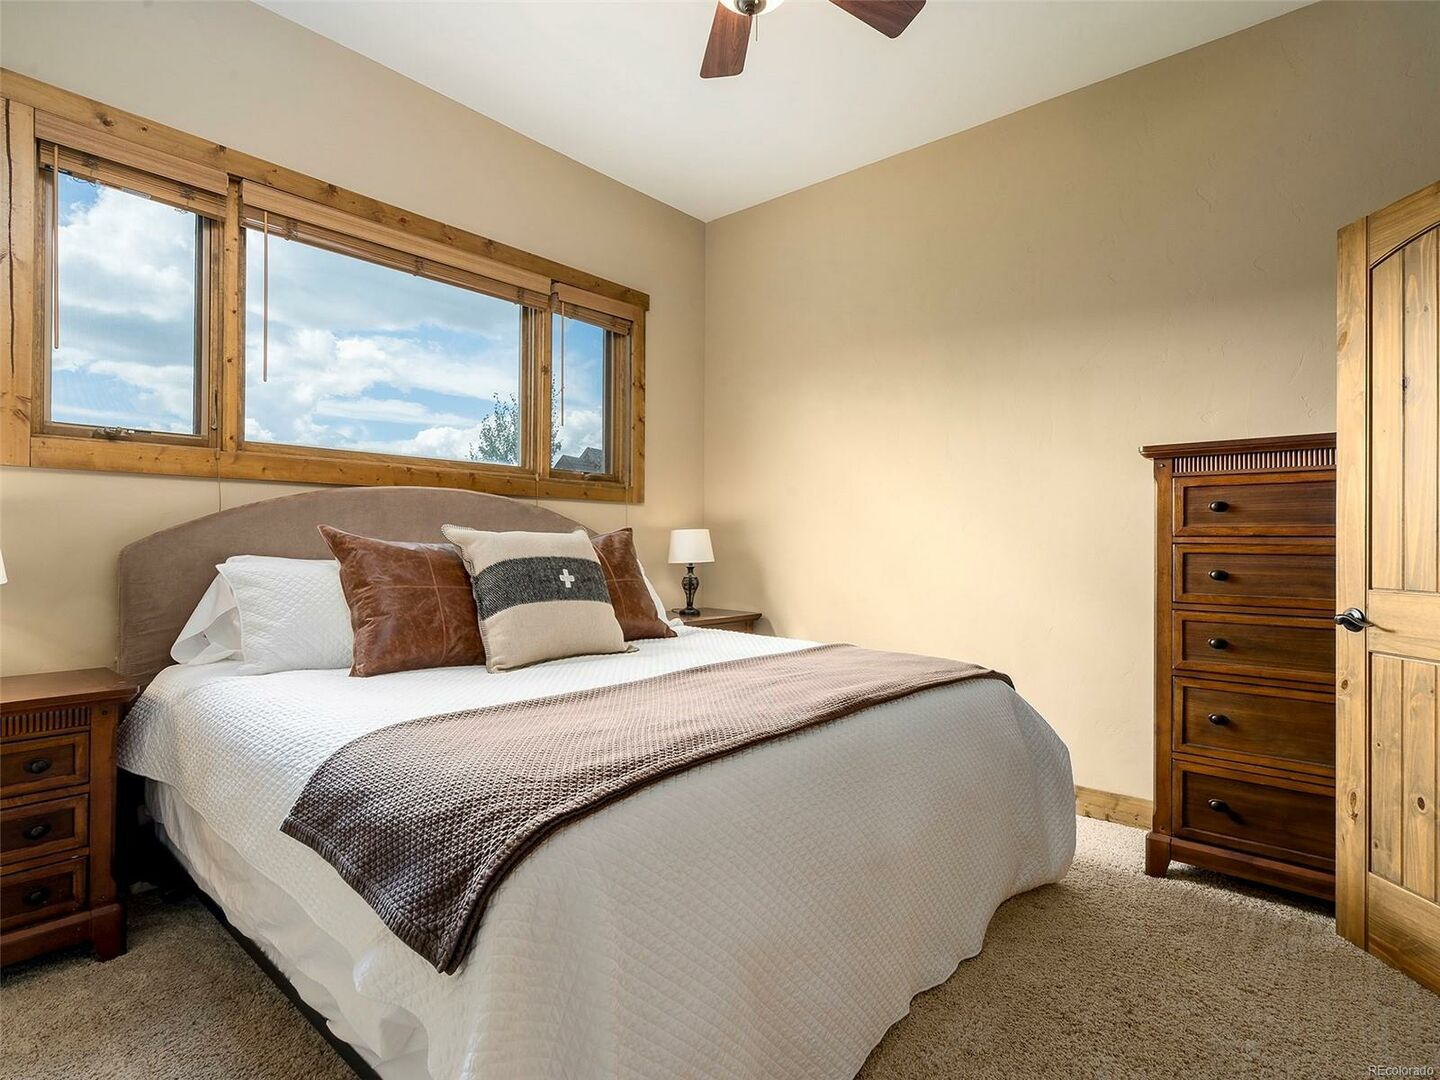 Bedroom with Large Bed, Window, Nightstands, and Dresser.